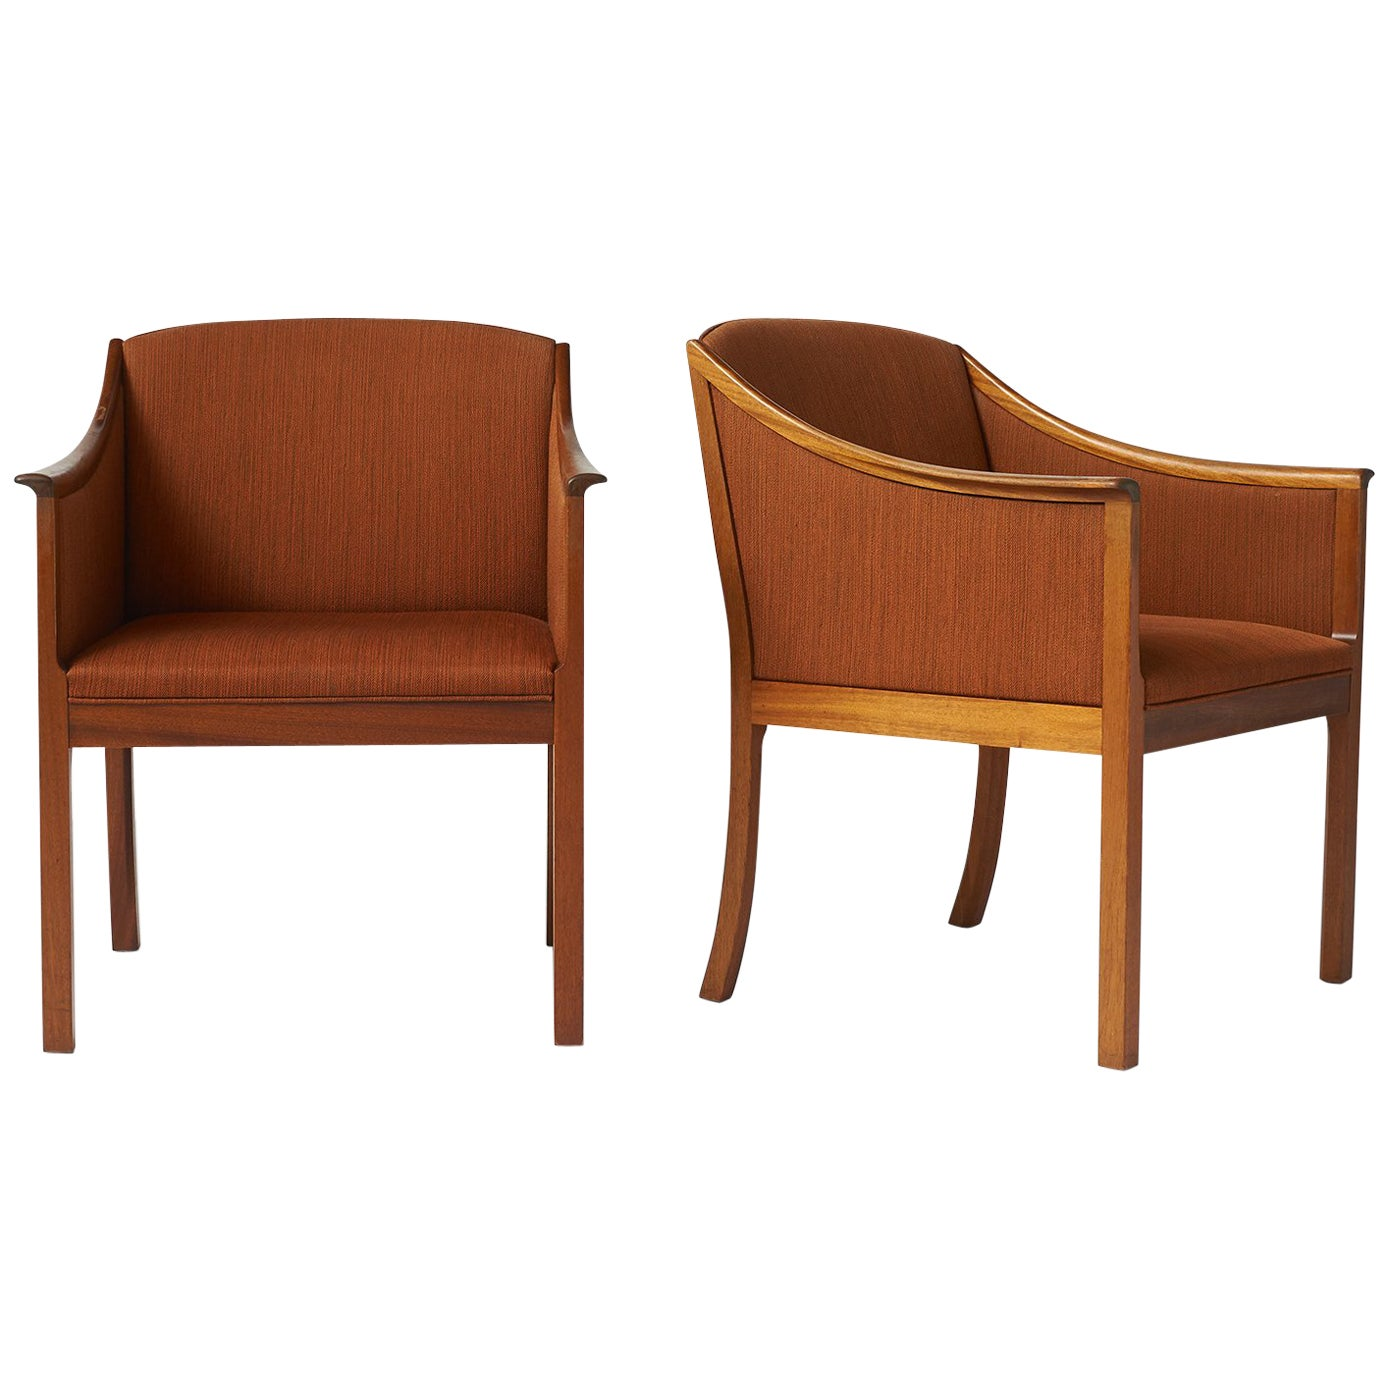 Pair of Lounge Chairs by Ole Wanscher